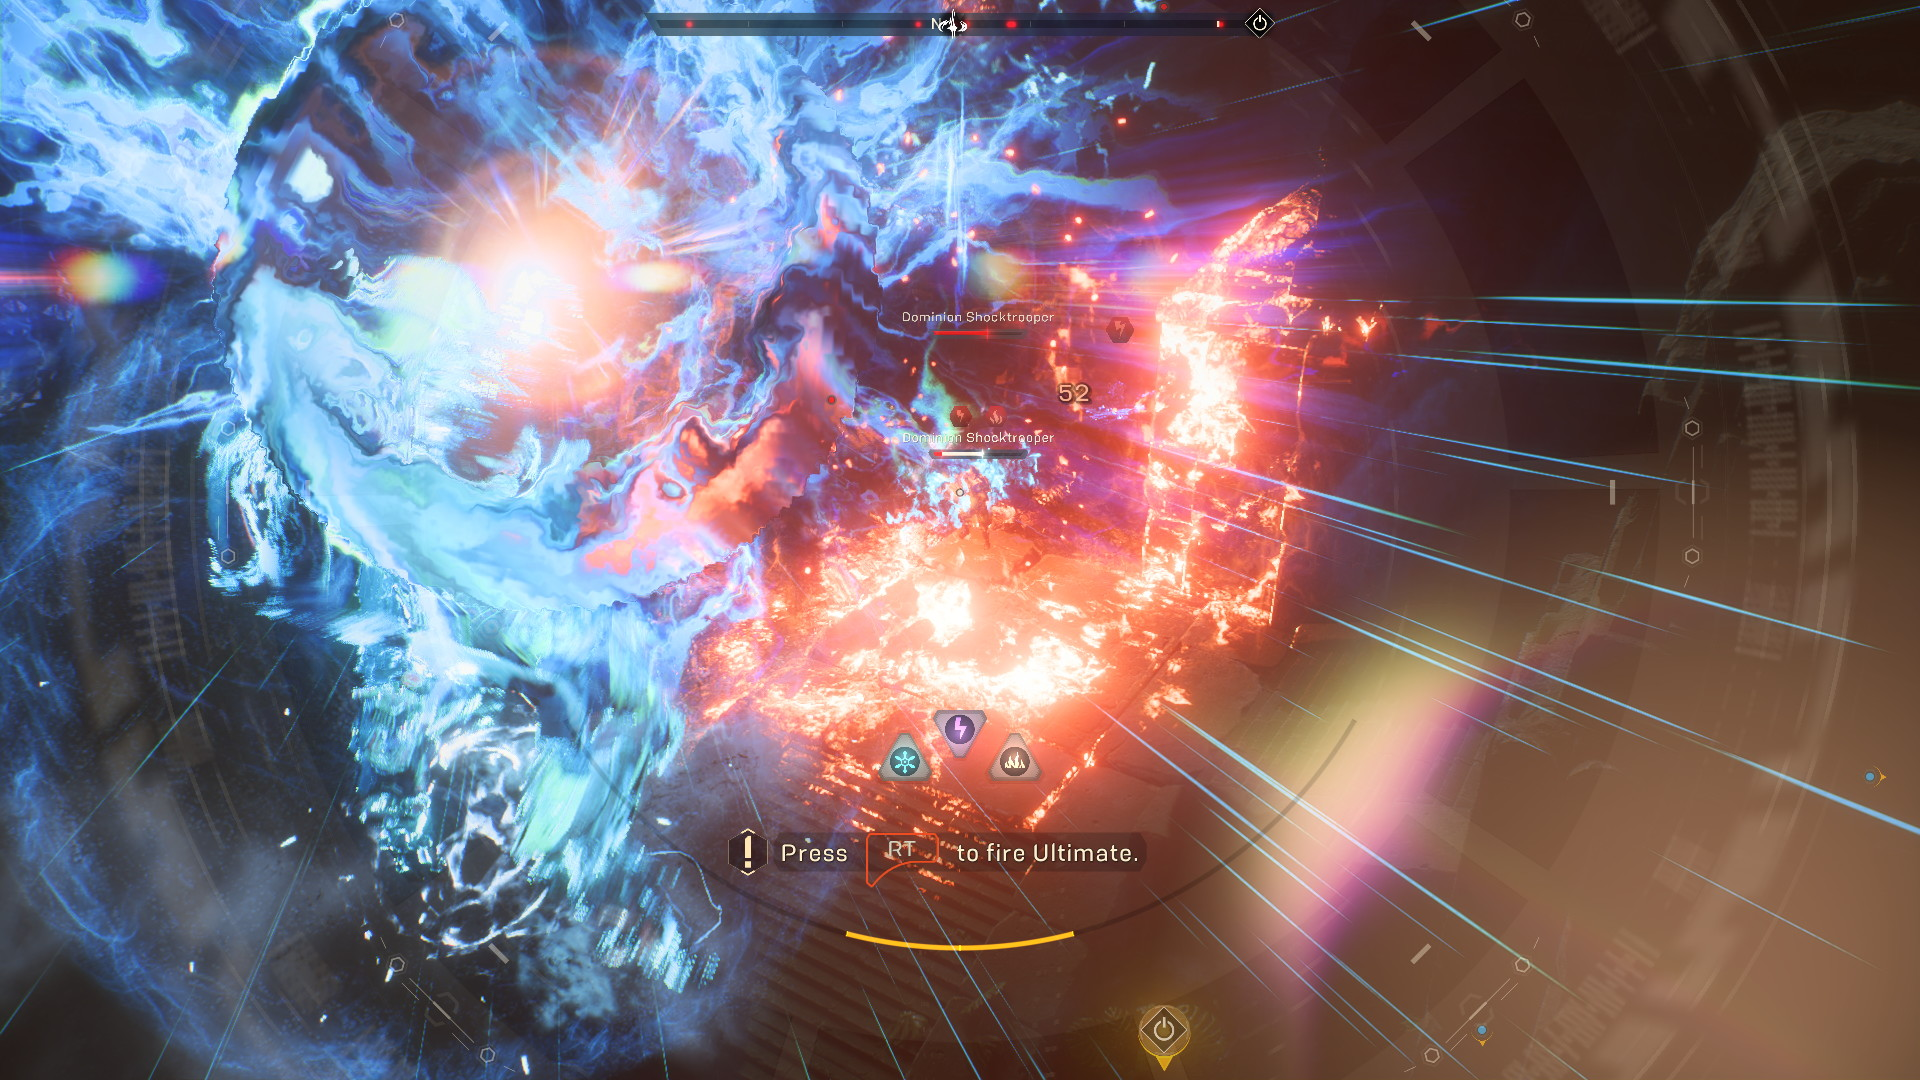 Anthem did nerf loot drops, but only after accidentally boosting